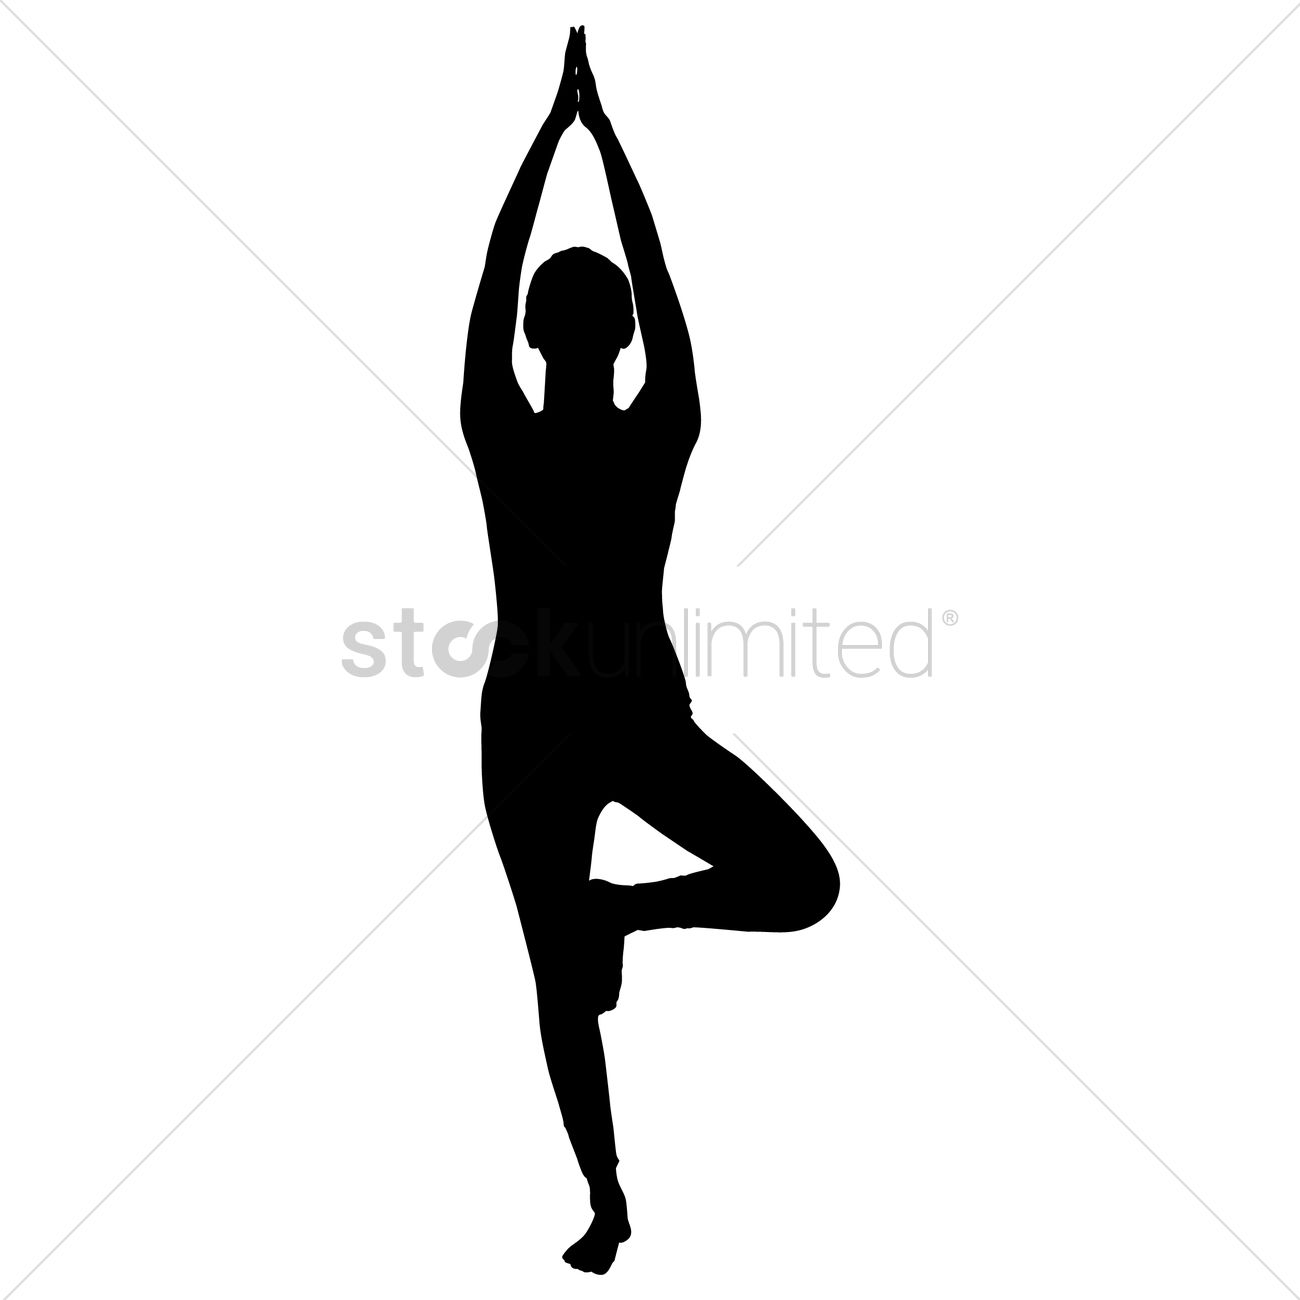 1300x1300 Silhouette Of A Woman Practicing Yoga Vector Image